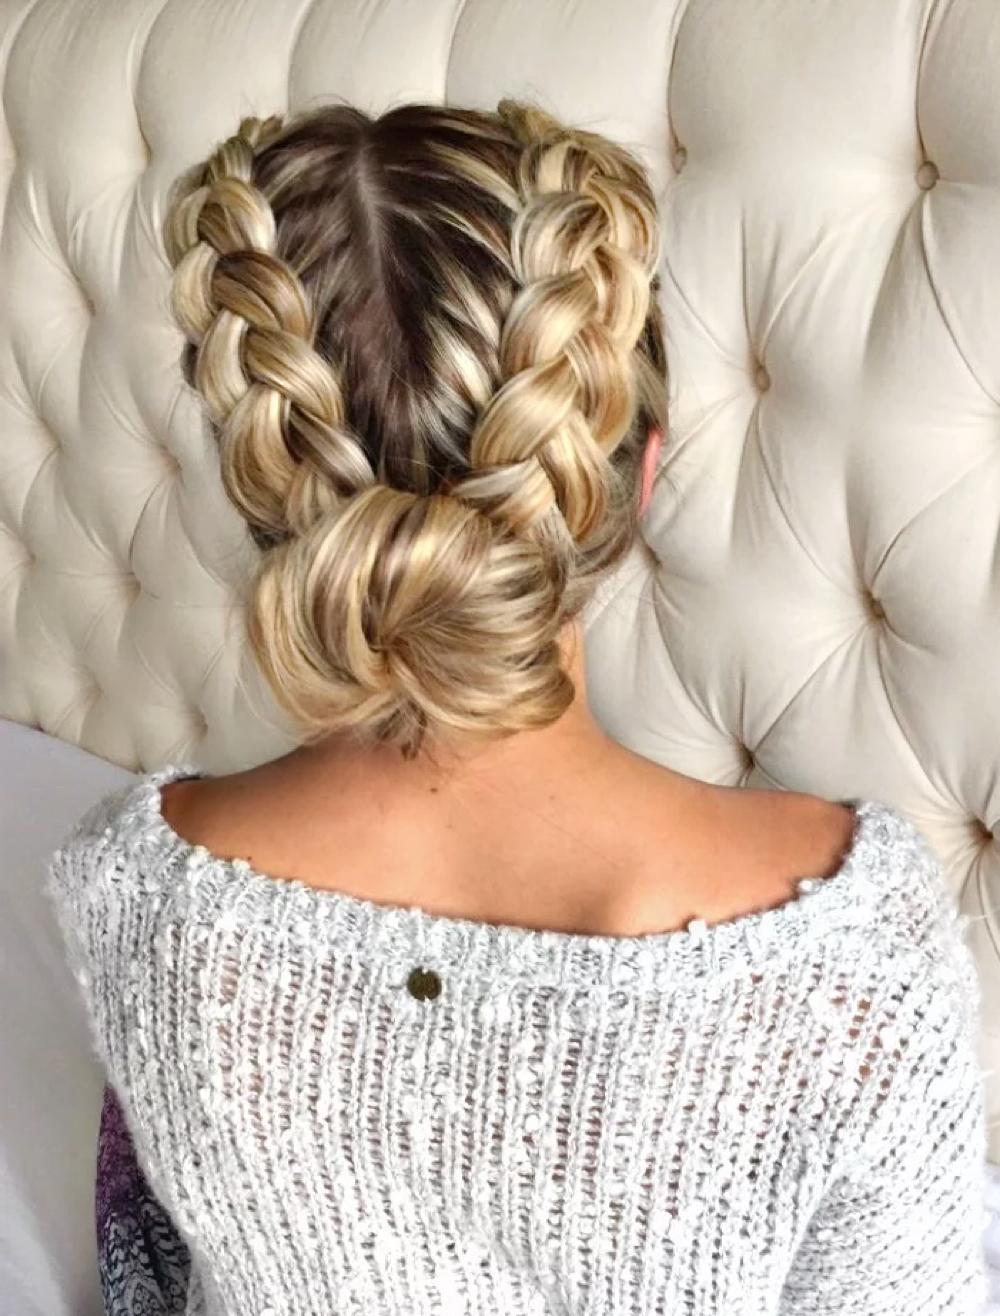 29 Gorgeous Braided Updo Ideas For 2019 With Regard To Widely Used Double Twist Bun Updo Hairstyles (View 2 of 20)